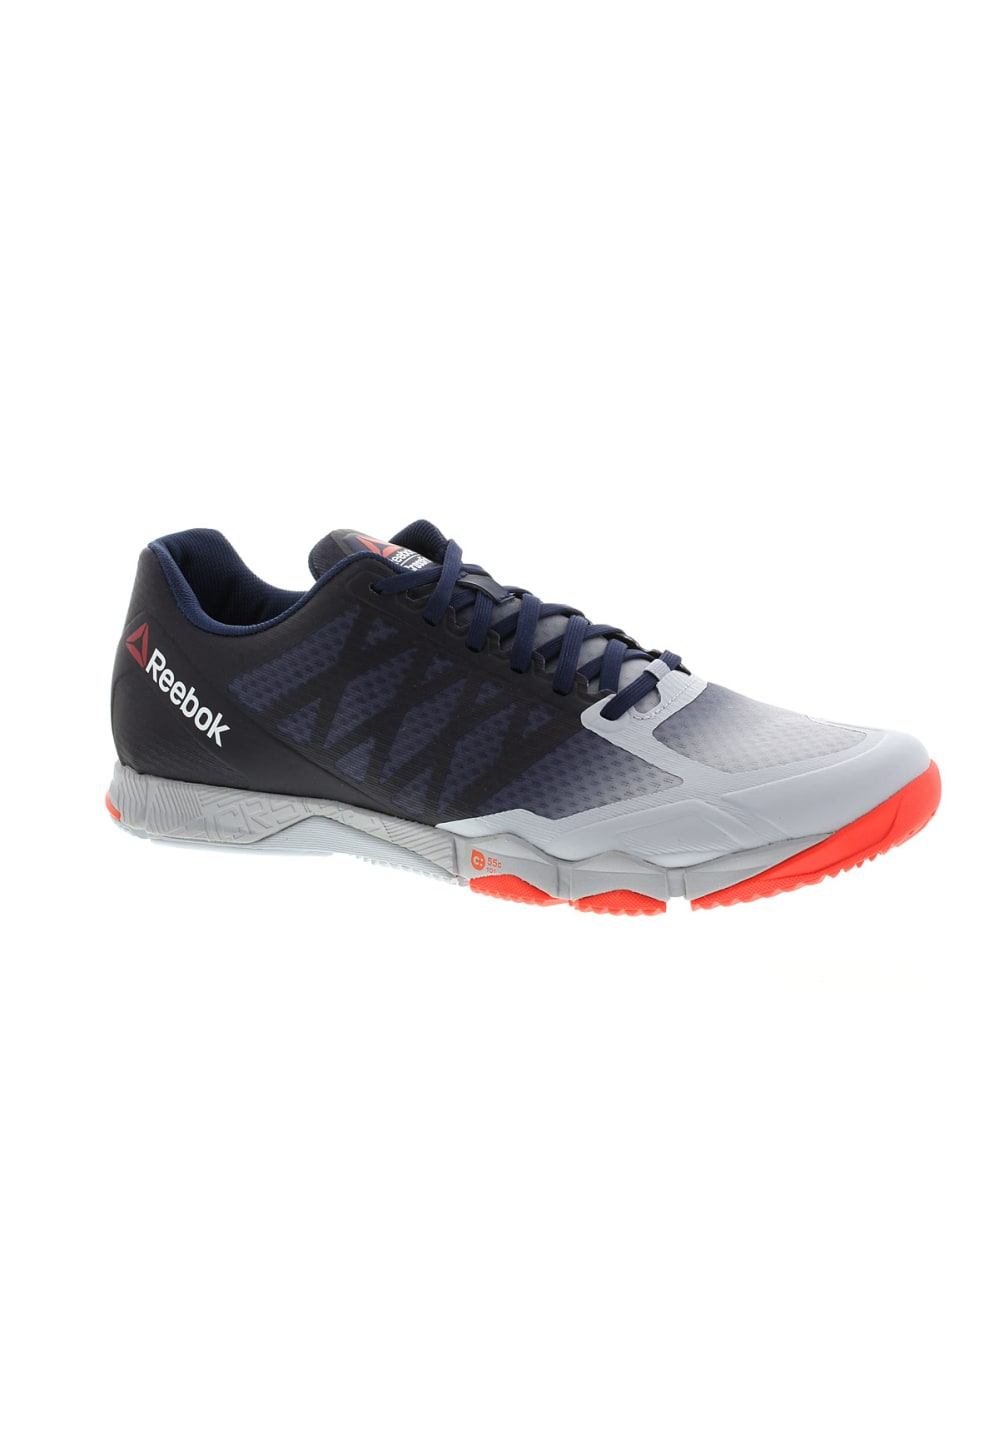 98dcf05c39 Reebok Crossfit Speed TR - Fitness shoes for Men - Grey